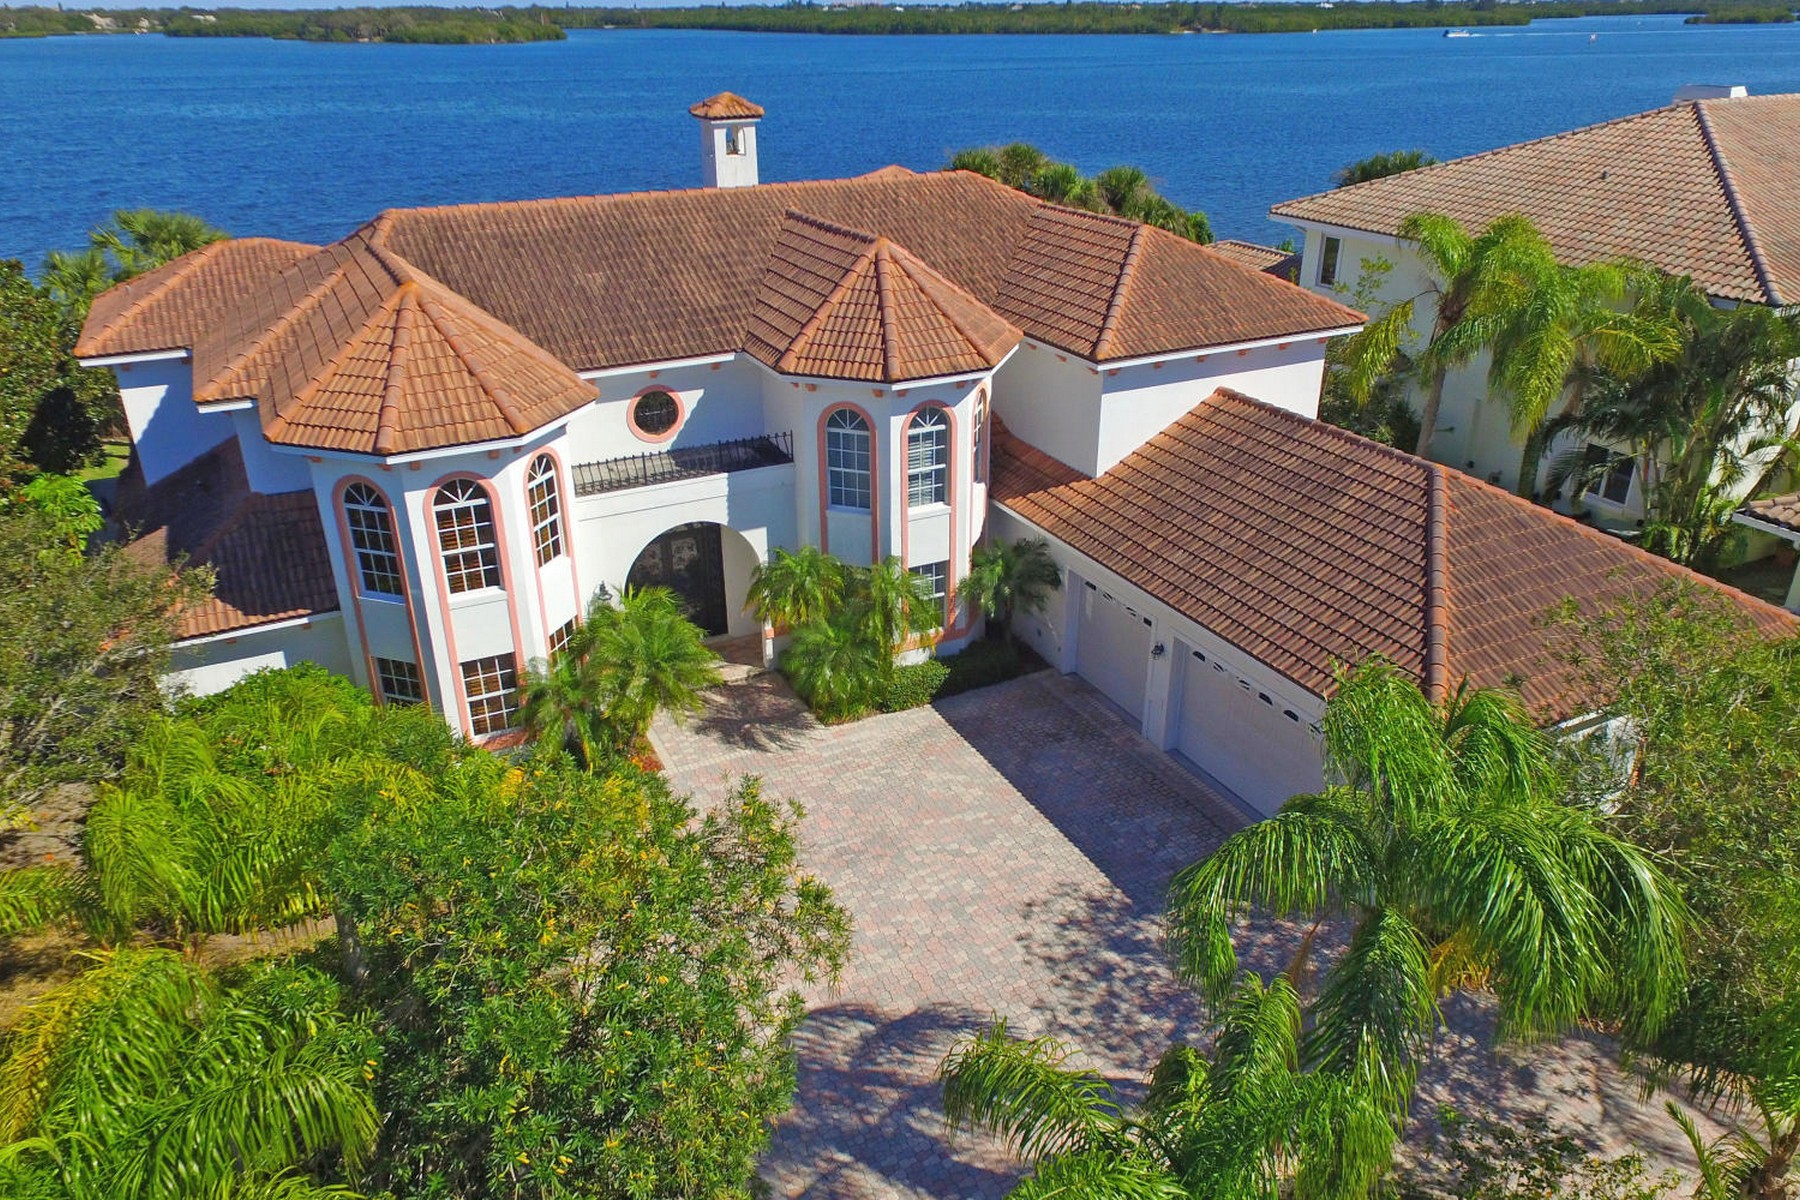 獨棟家庭住宅 為 出售 在 Magnificent Riverfront Estate with 6,464 Square Feet 5210 Saint Andrews Island Dr Vero Beach, 佛羅里達州 32967 美國